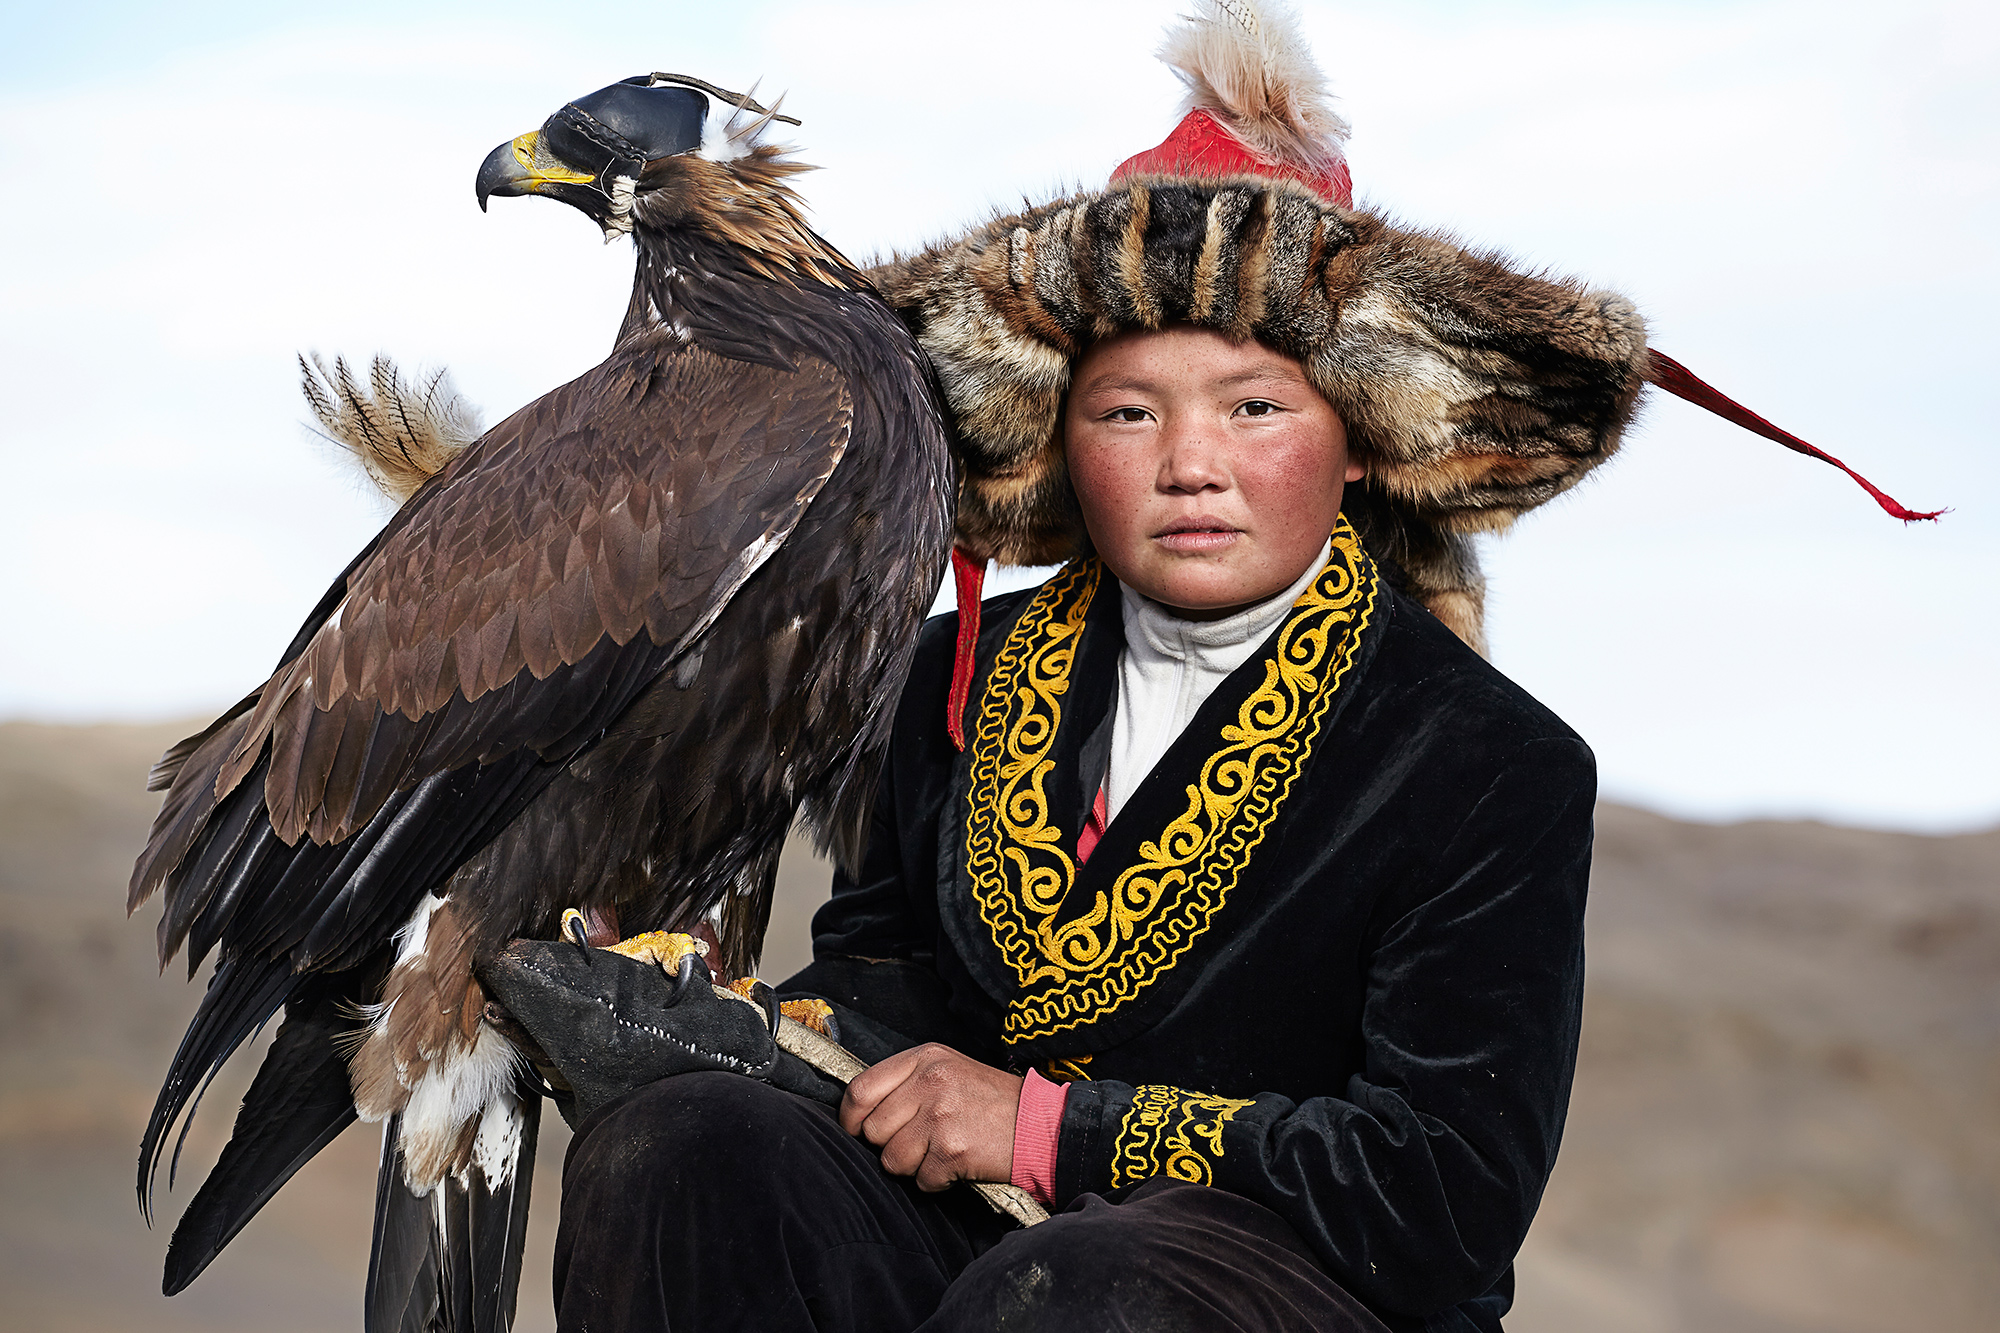 Eagle hunting in Mongolia 06